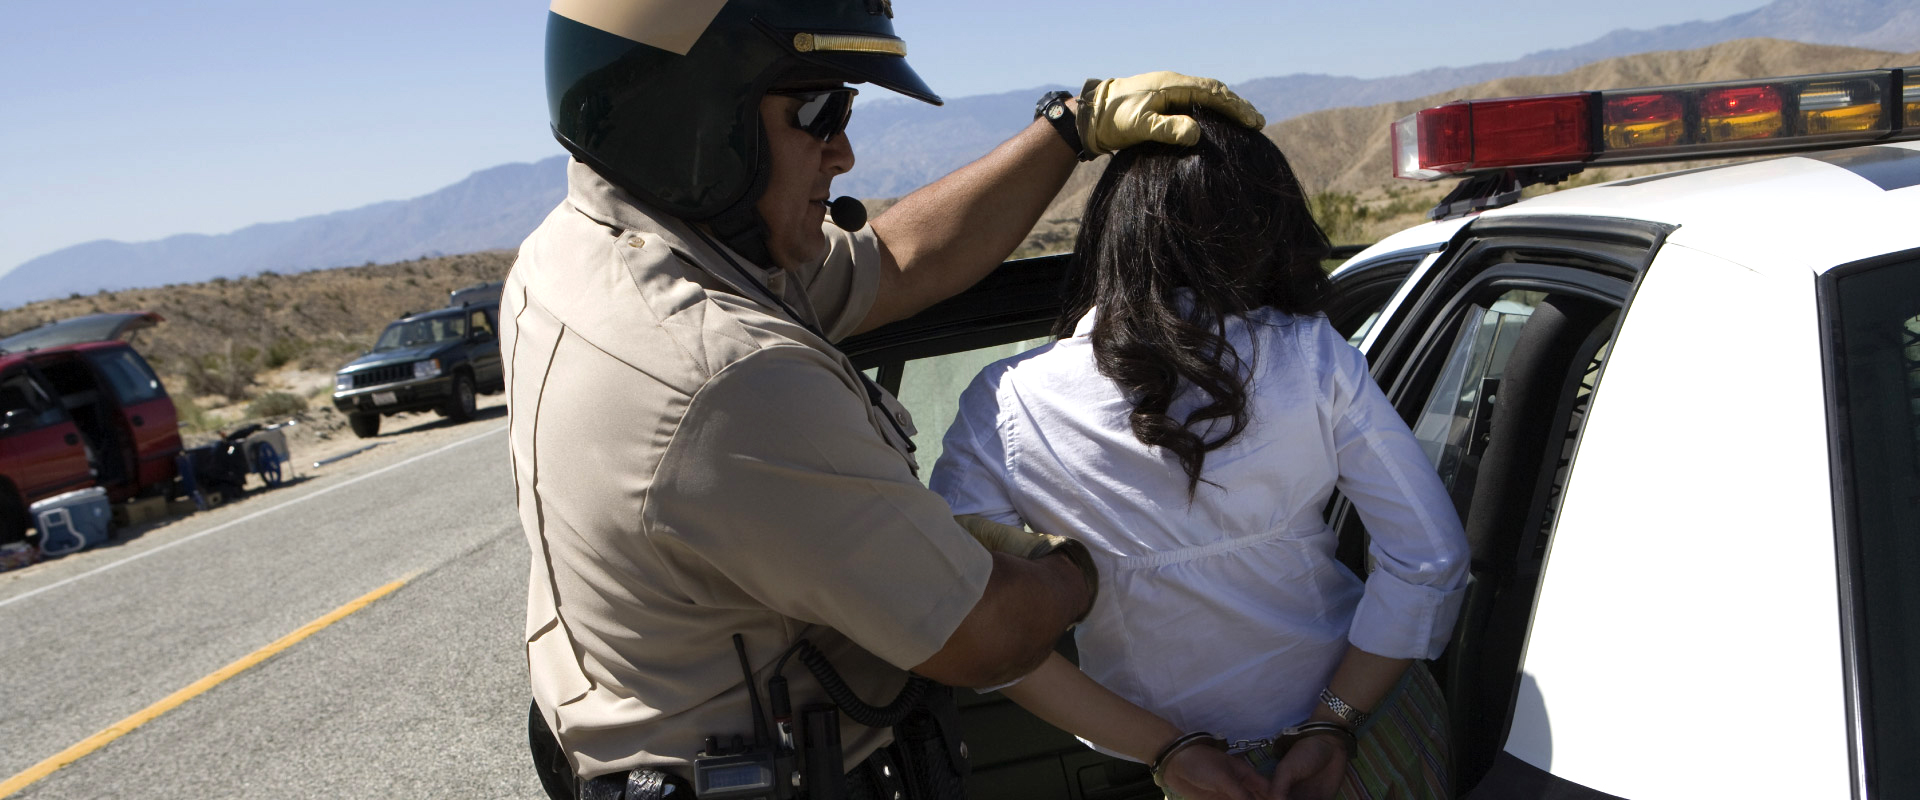 arrested for criminal charges in Arizona